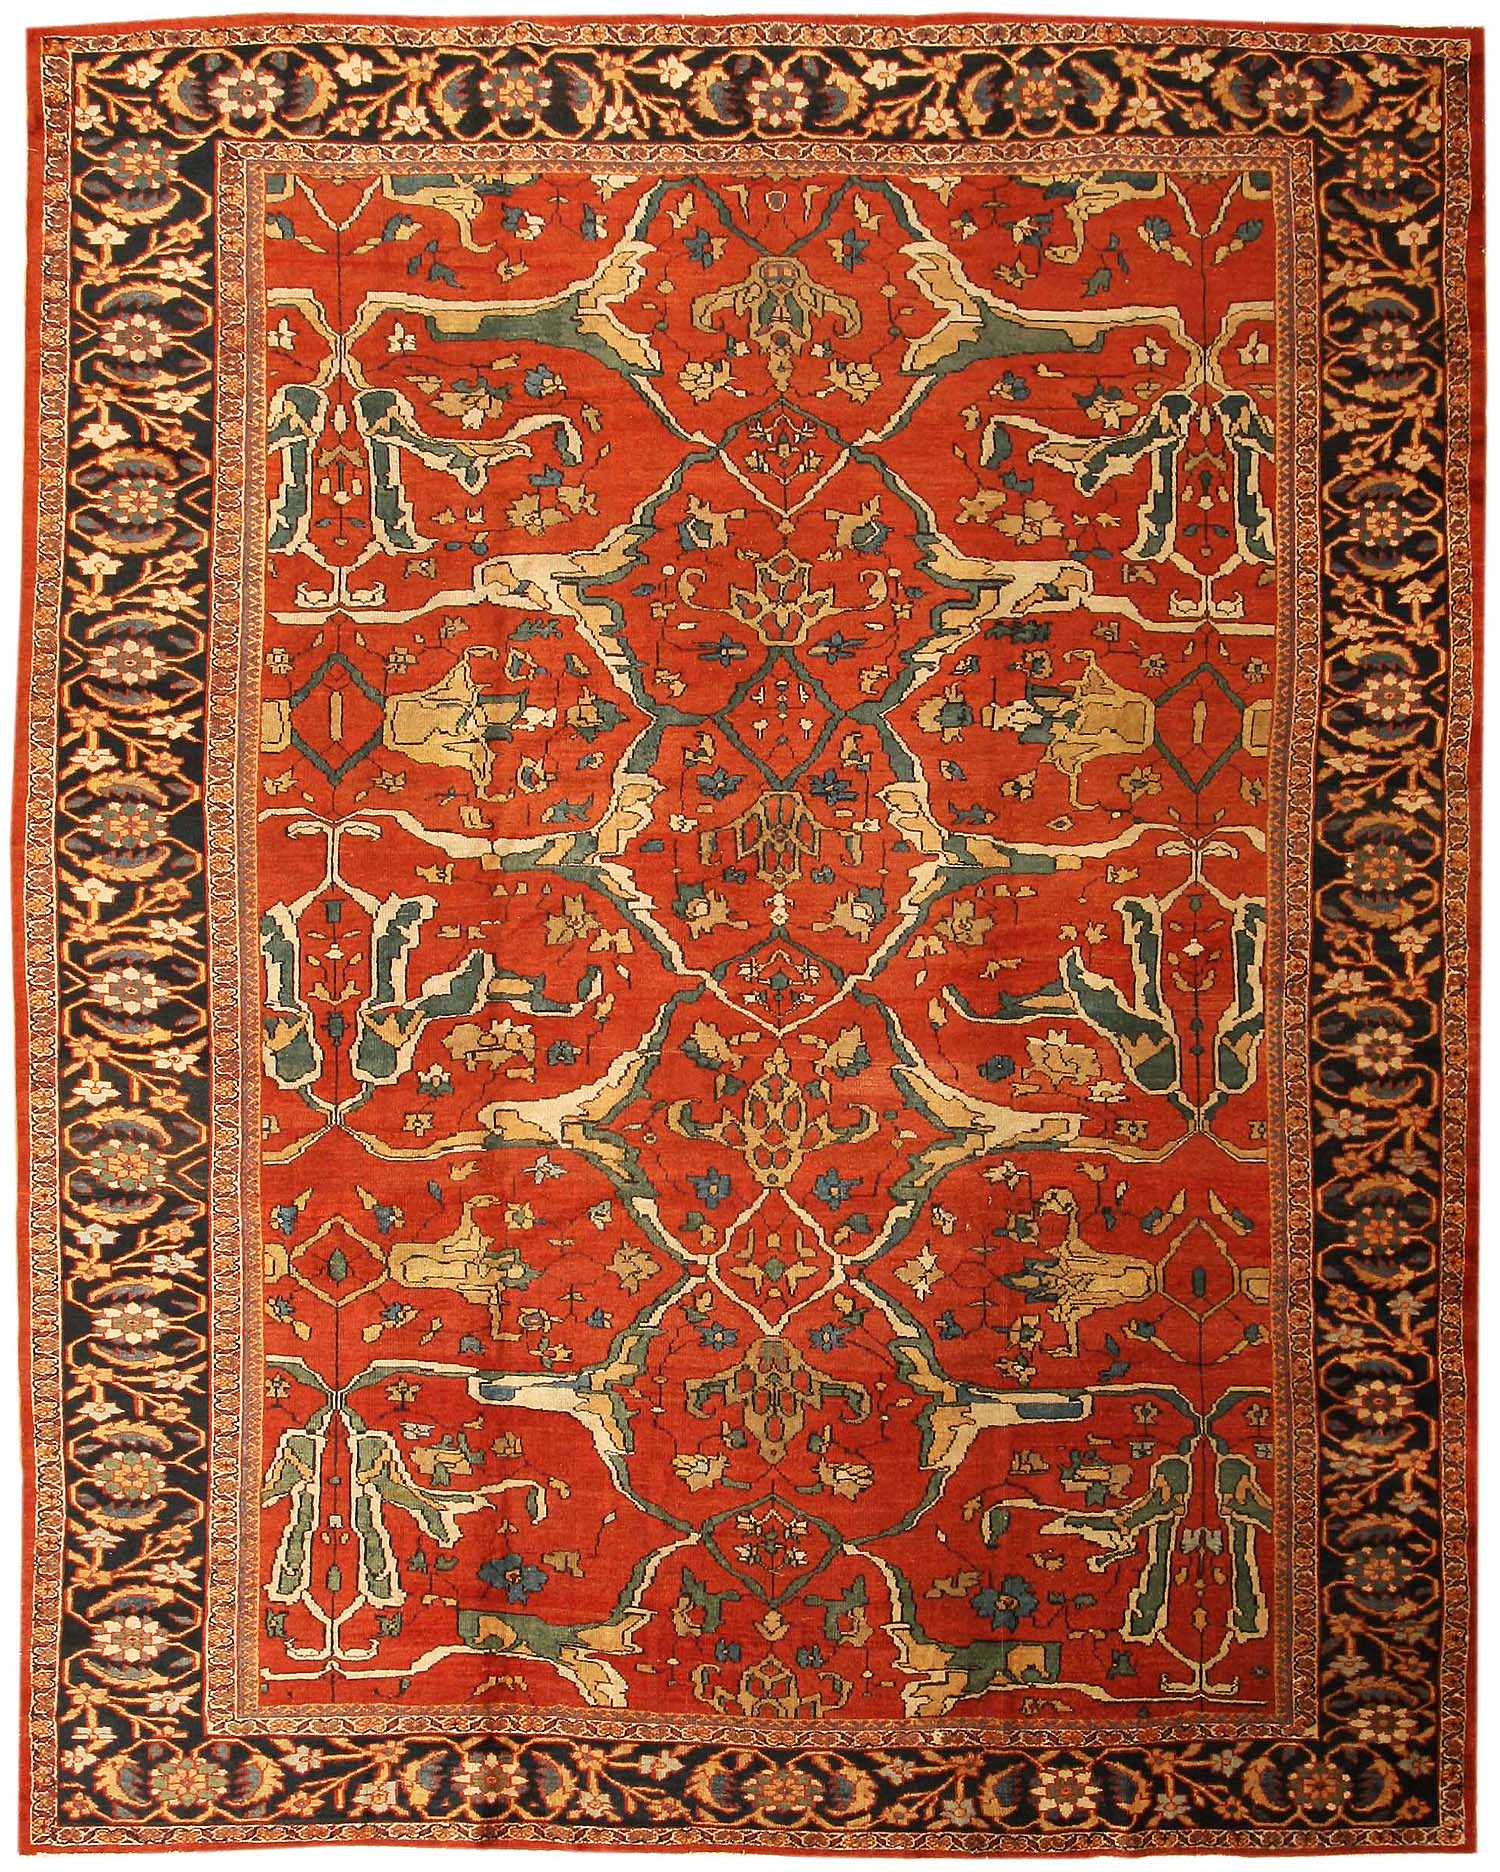 Persia(n) Carpets All The Way.